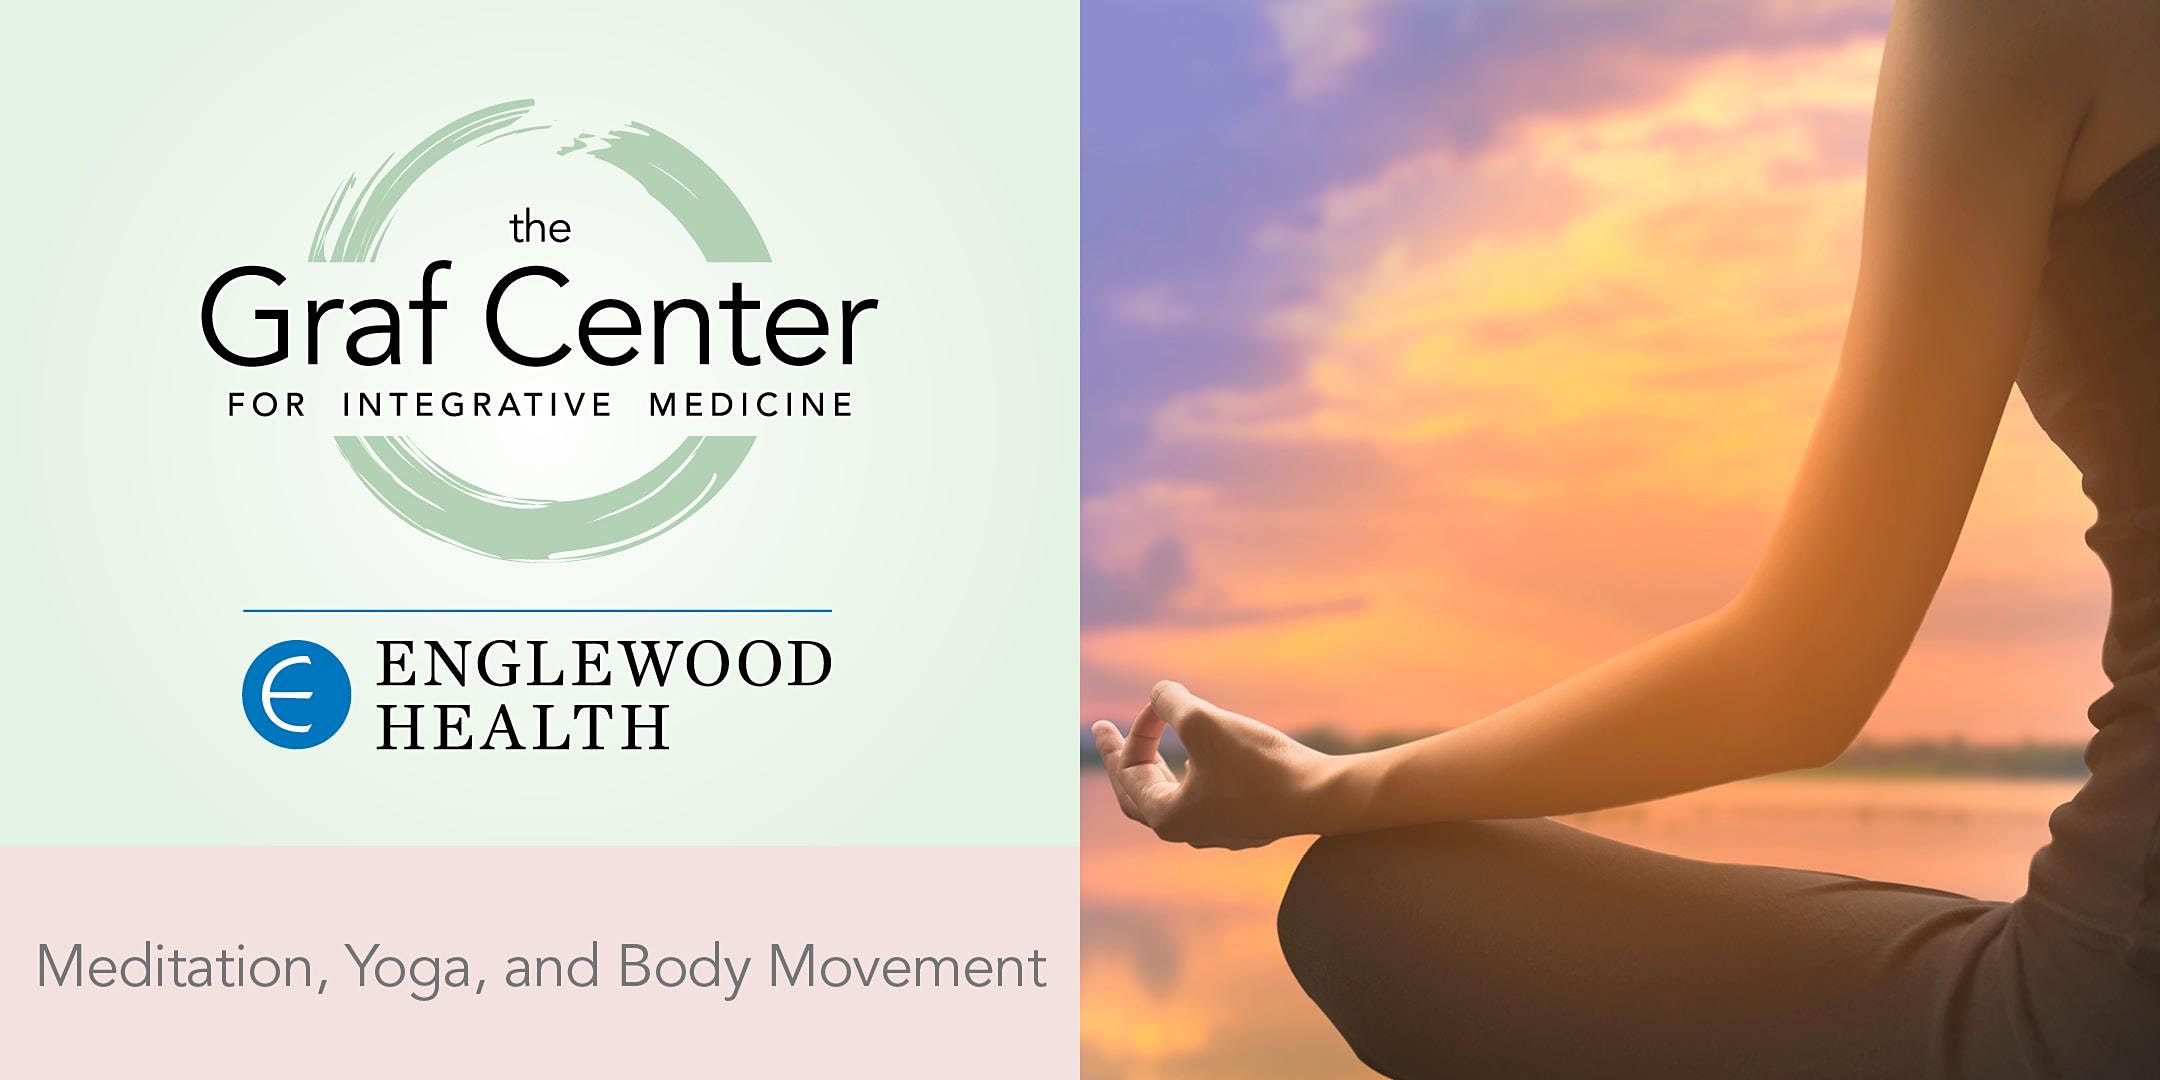 More info: Mindful Meditation Workshop for Cancer Patients and Survivors